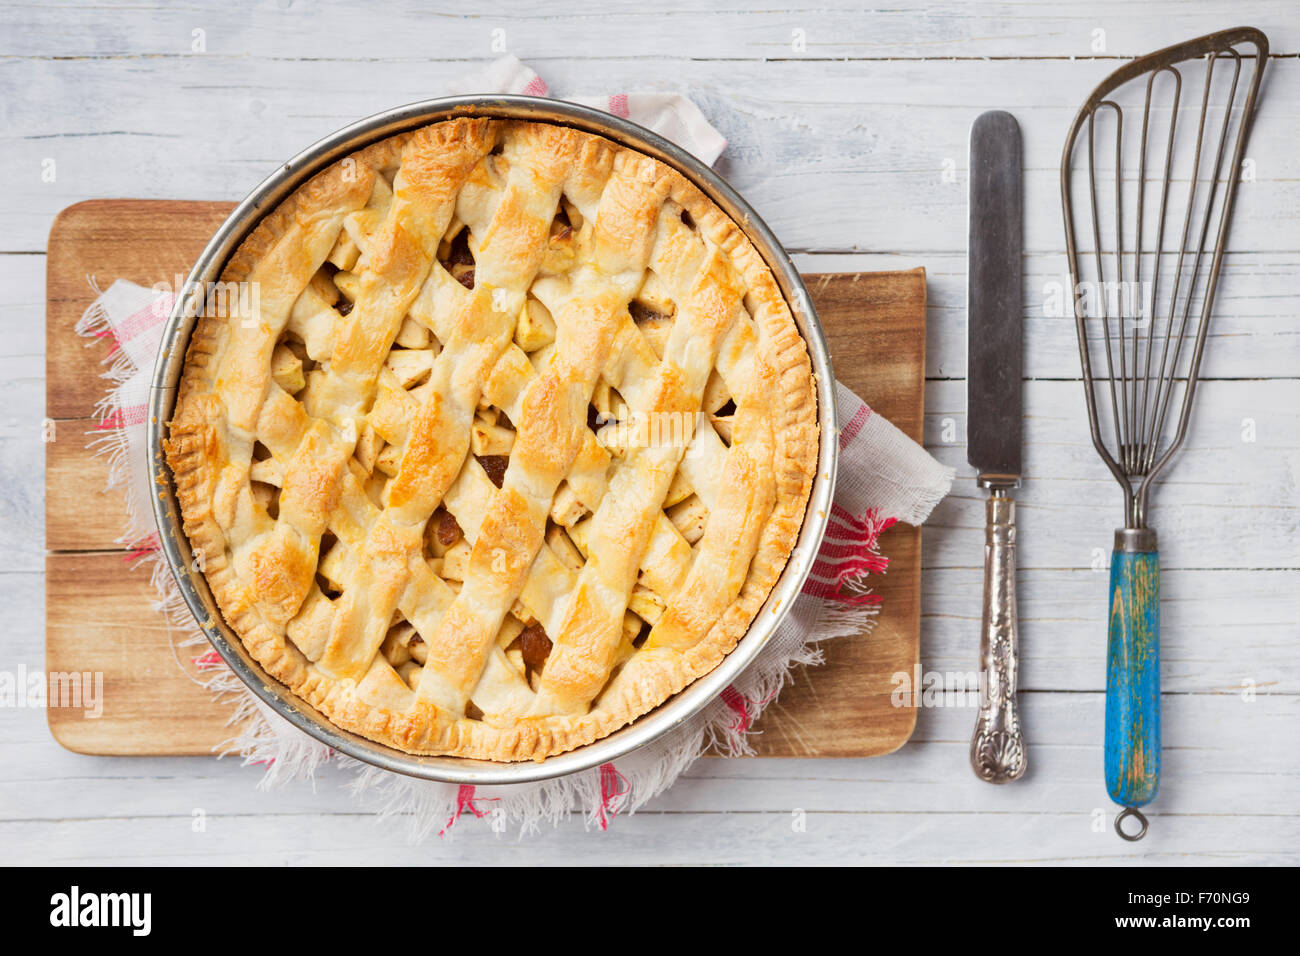 Homemade Dutch apple pie on a rustic table. Photographed from directly above. - Stock Image